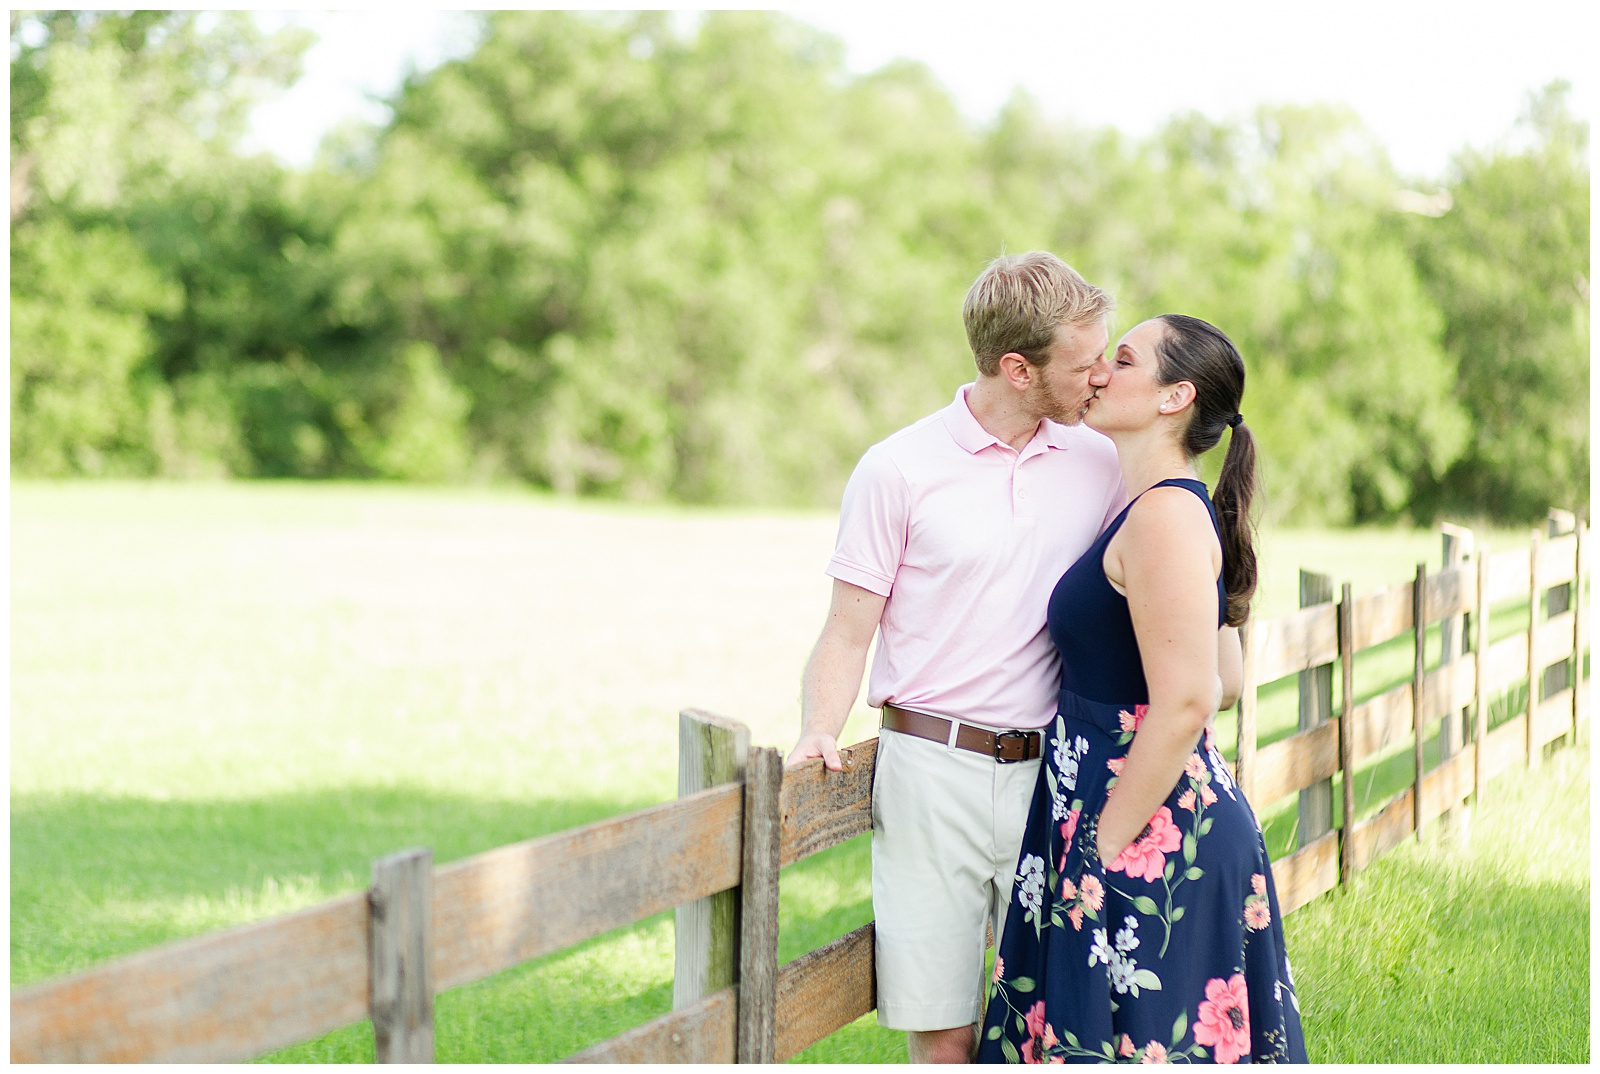 Spetch Park Engagement Session-Bri'elle + TJ-Oklahoma Wedding Photographer0102